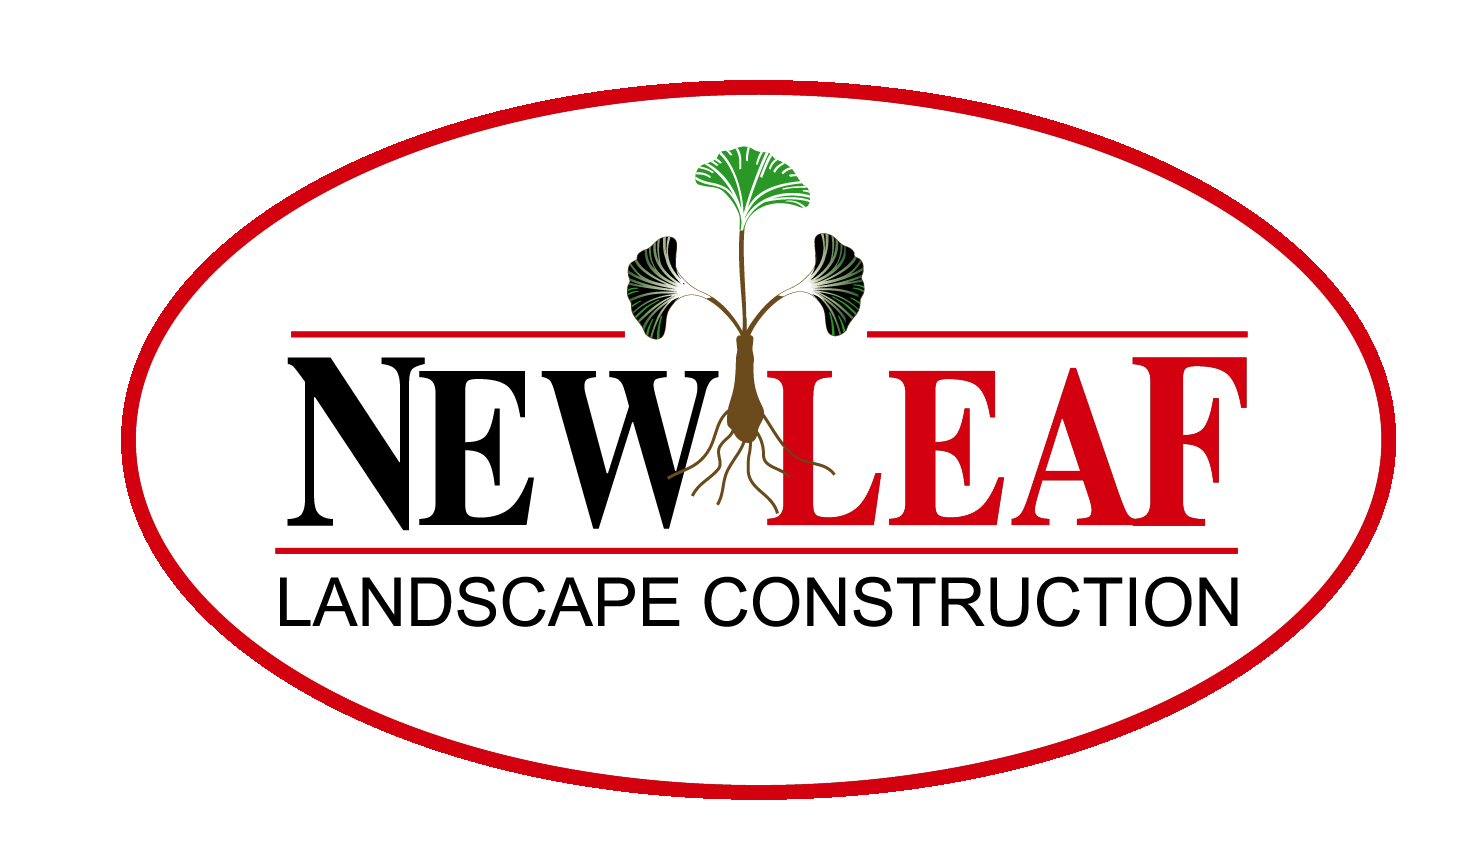 New Leaf Landscape Construction Charleston, SC